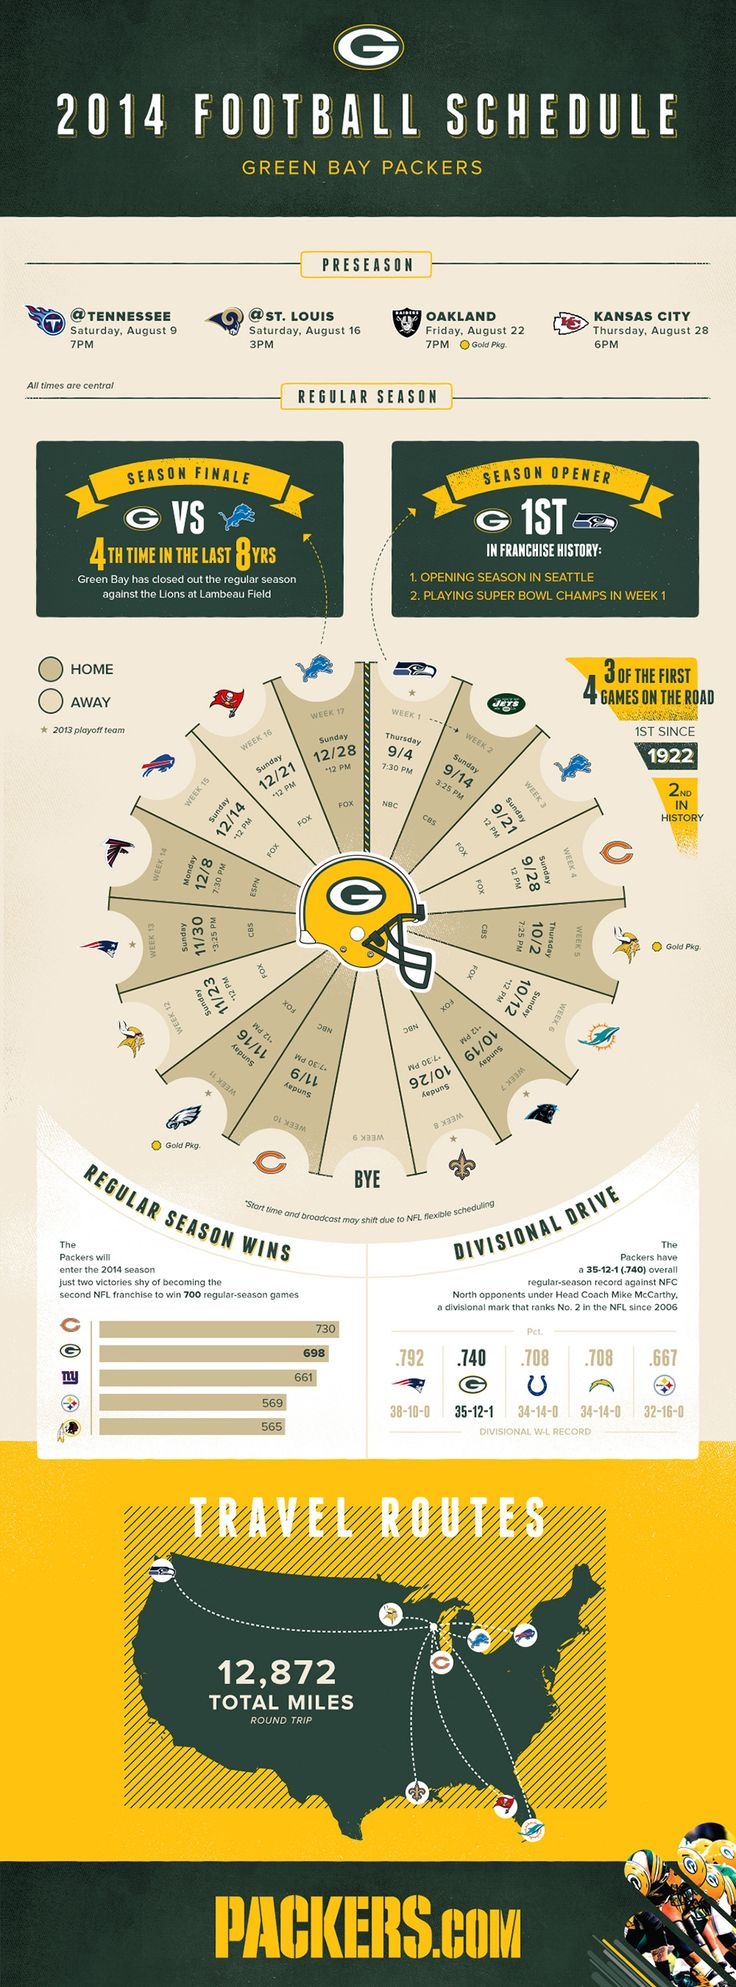 Green Bay Packers Infographic - 2014 Season